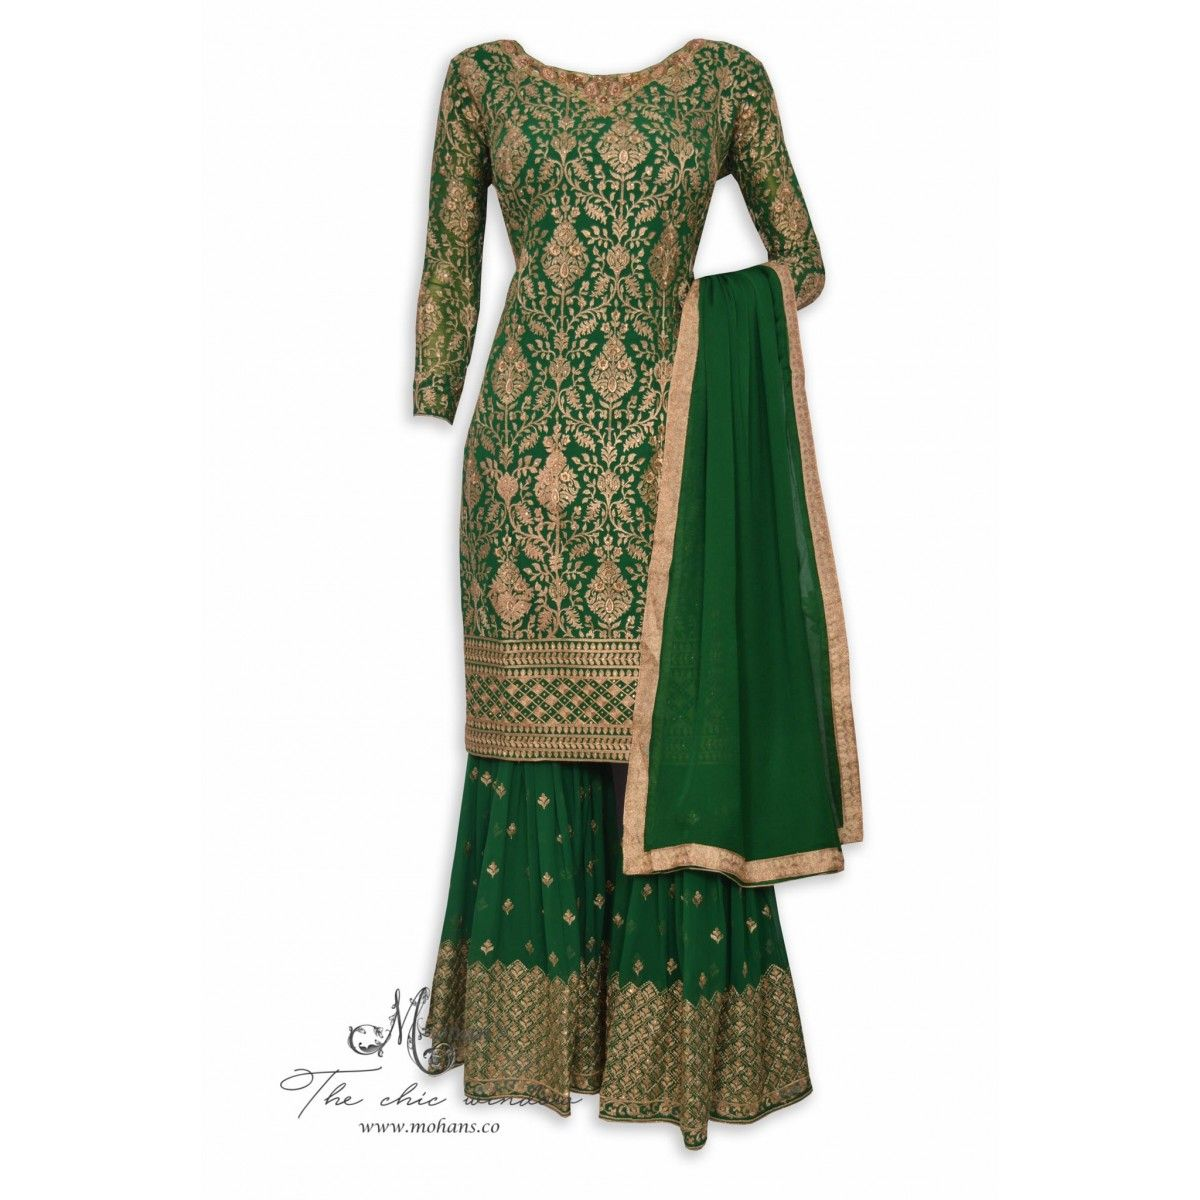 9c5fc7e4d9 Appealing bottle green stitched sharara suit adorn in antique zari and hand  work-Mohan's the chic window